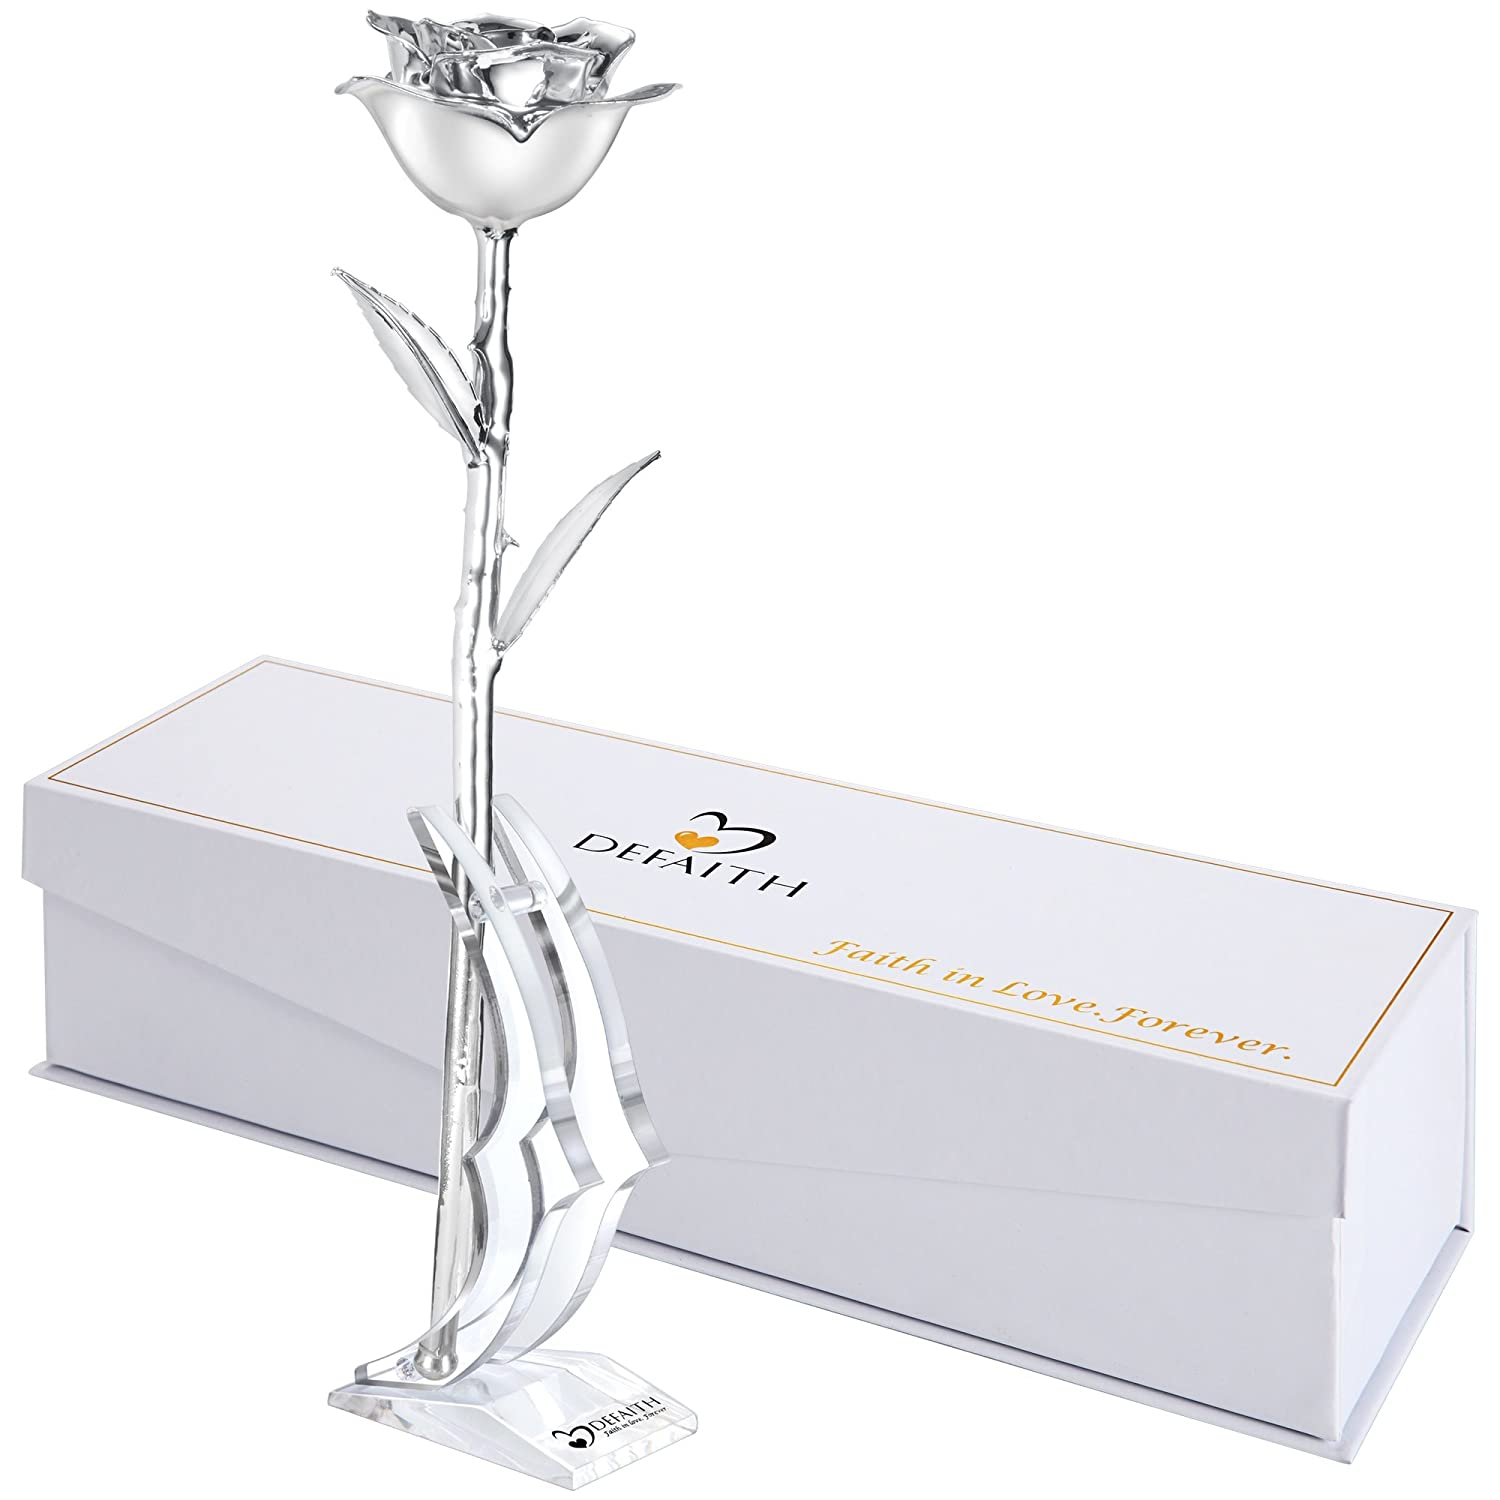 (Q.silver Dipped Rose) - DeFaith Silver Everlasting Rose Made from Real Rose with Stand - You are loved always - Great 25th Anniversary Gifts and Mother's Day Gift for Her Wife Women B01CXOUKTG Q.silver Dipped Rose